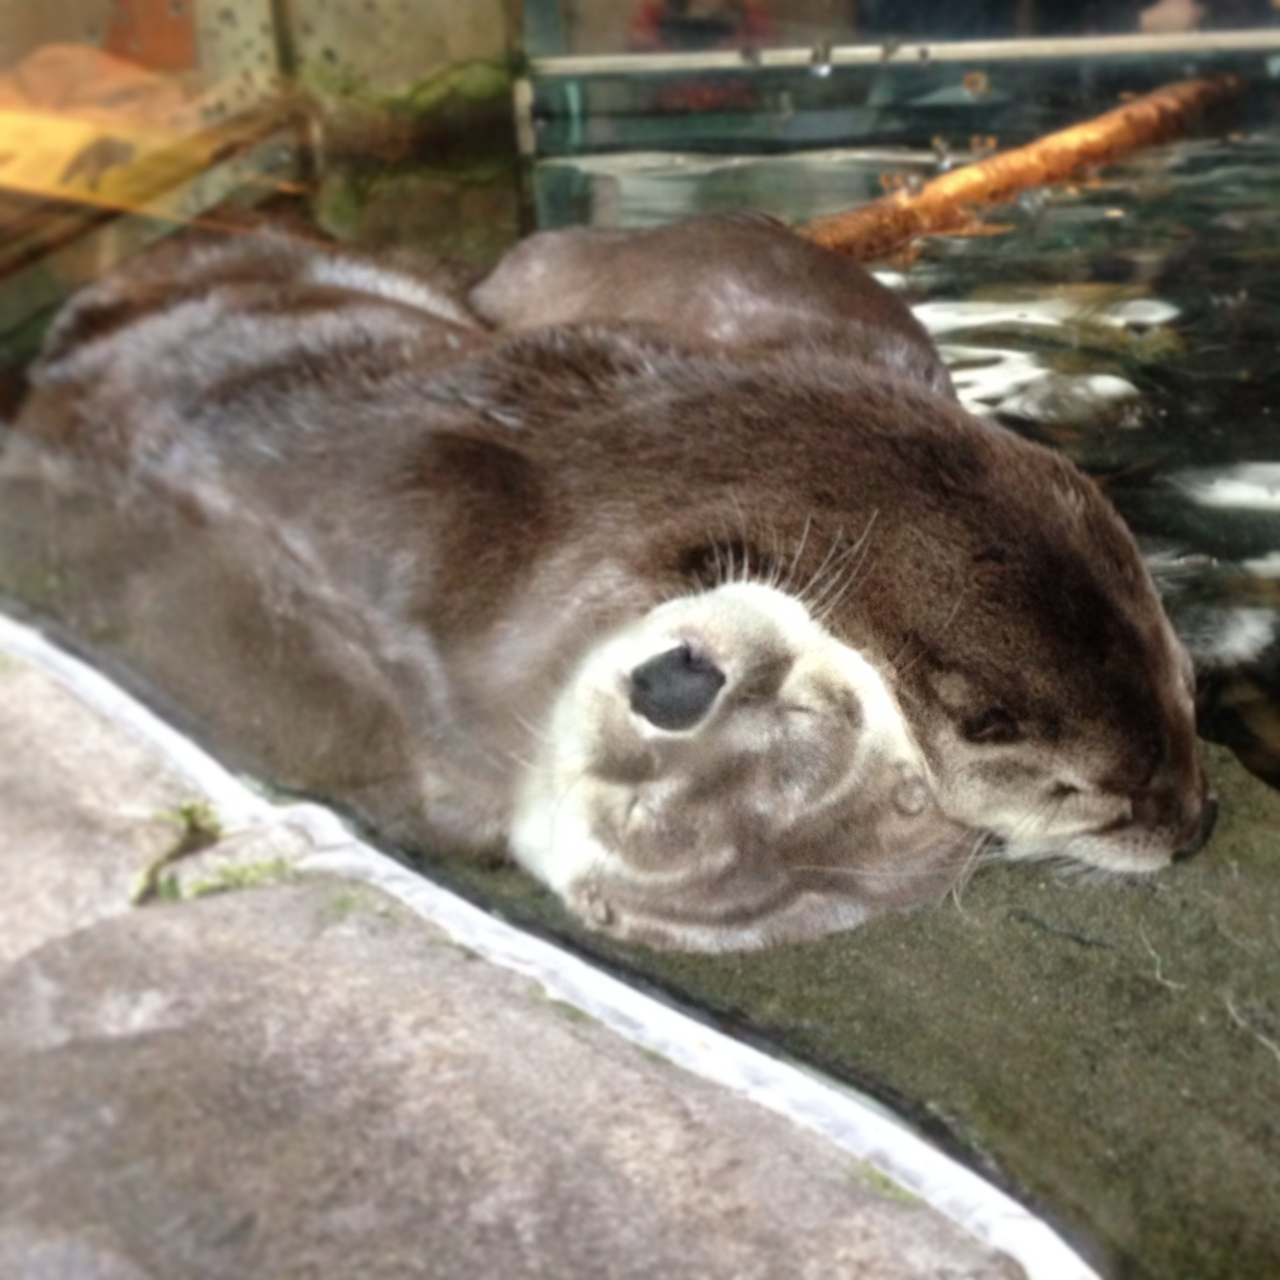 Otter snugs at the aquarium